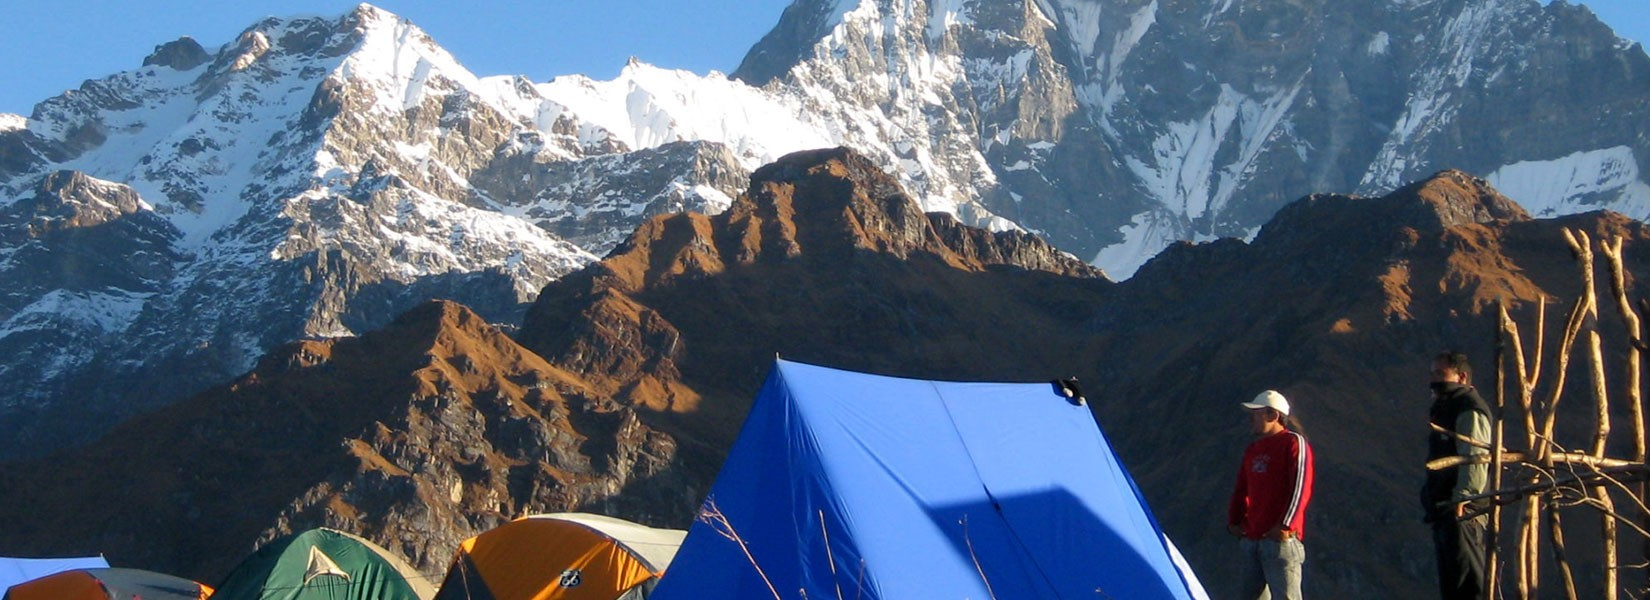 Machhapuchhre Model trek (fishtail mountain model trek)